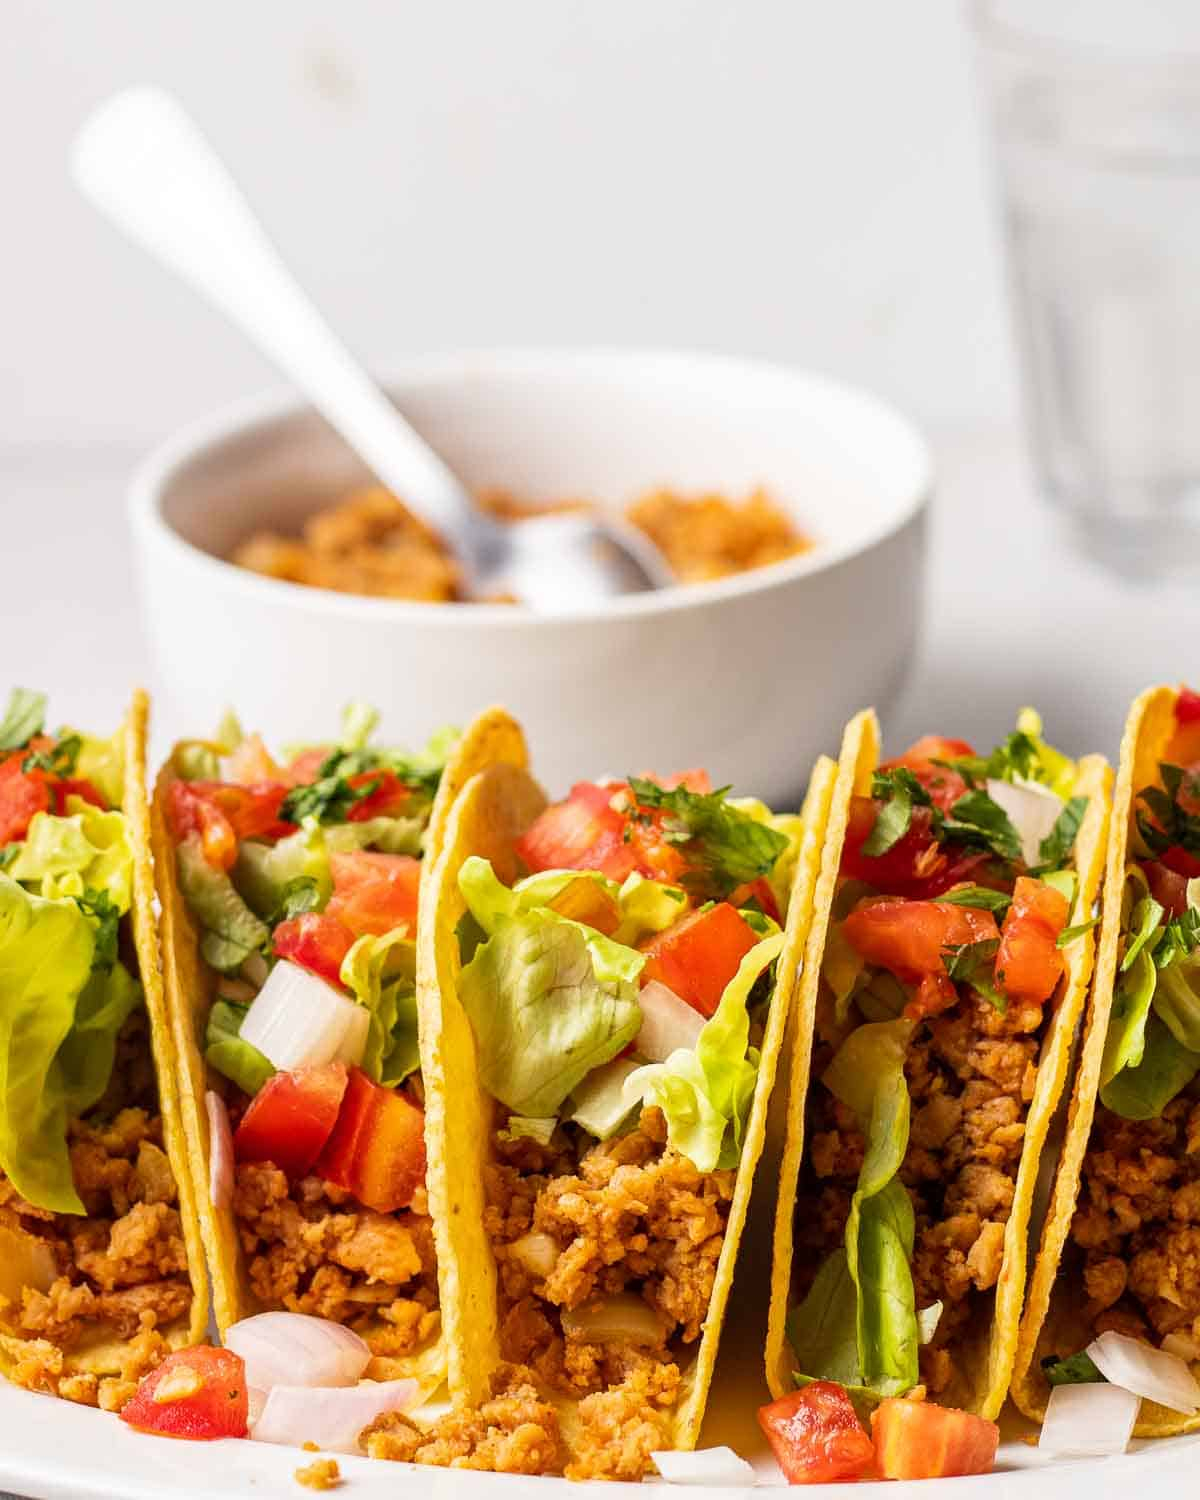 TVP tacos arranged on a plate. There is a bowl of taco meat and glass of water behind.